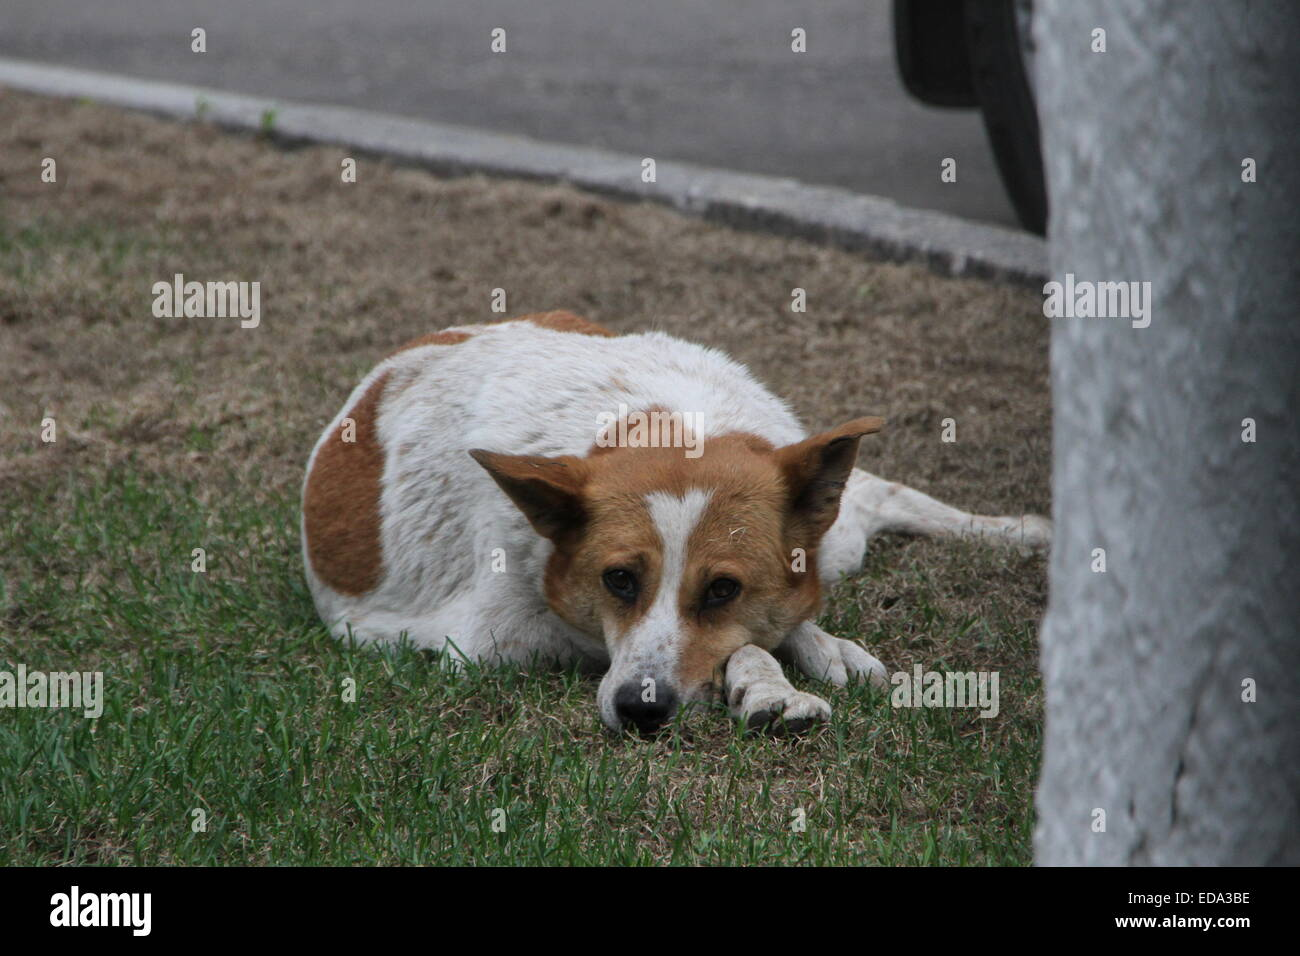 Homeless purebred dog on the street, day - Stock Image